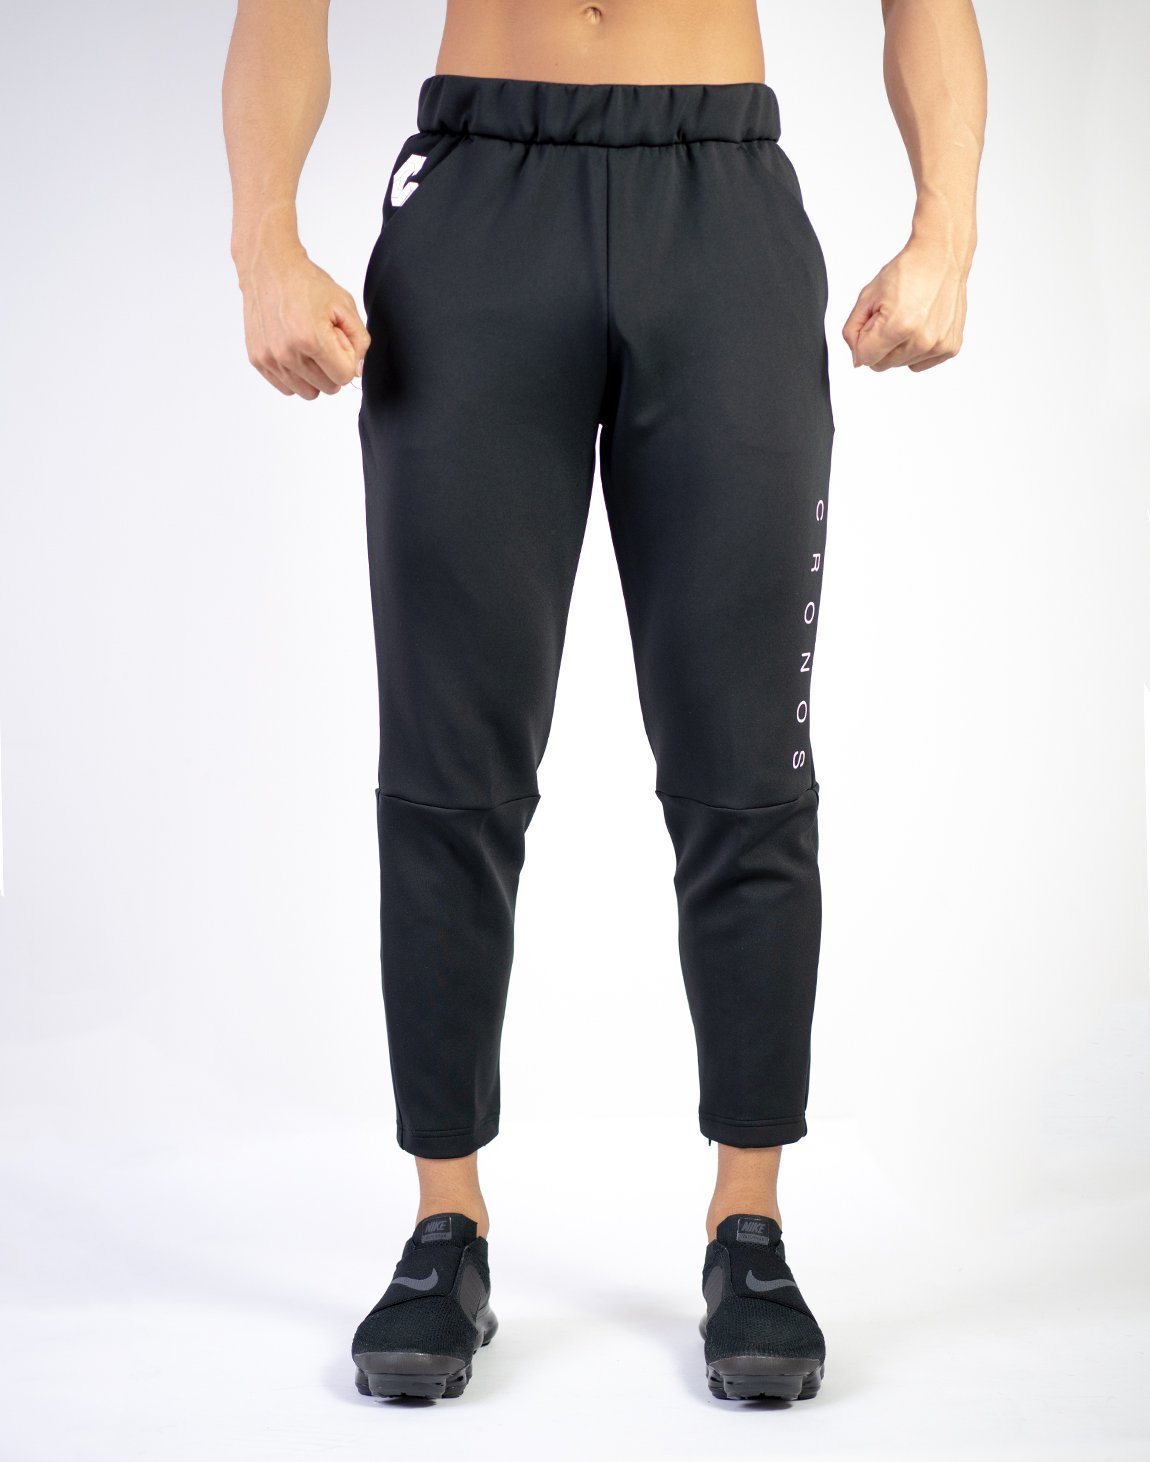 MODE BASIC DESIGN PANTS 02 BLACK